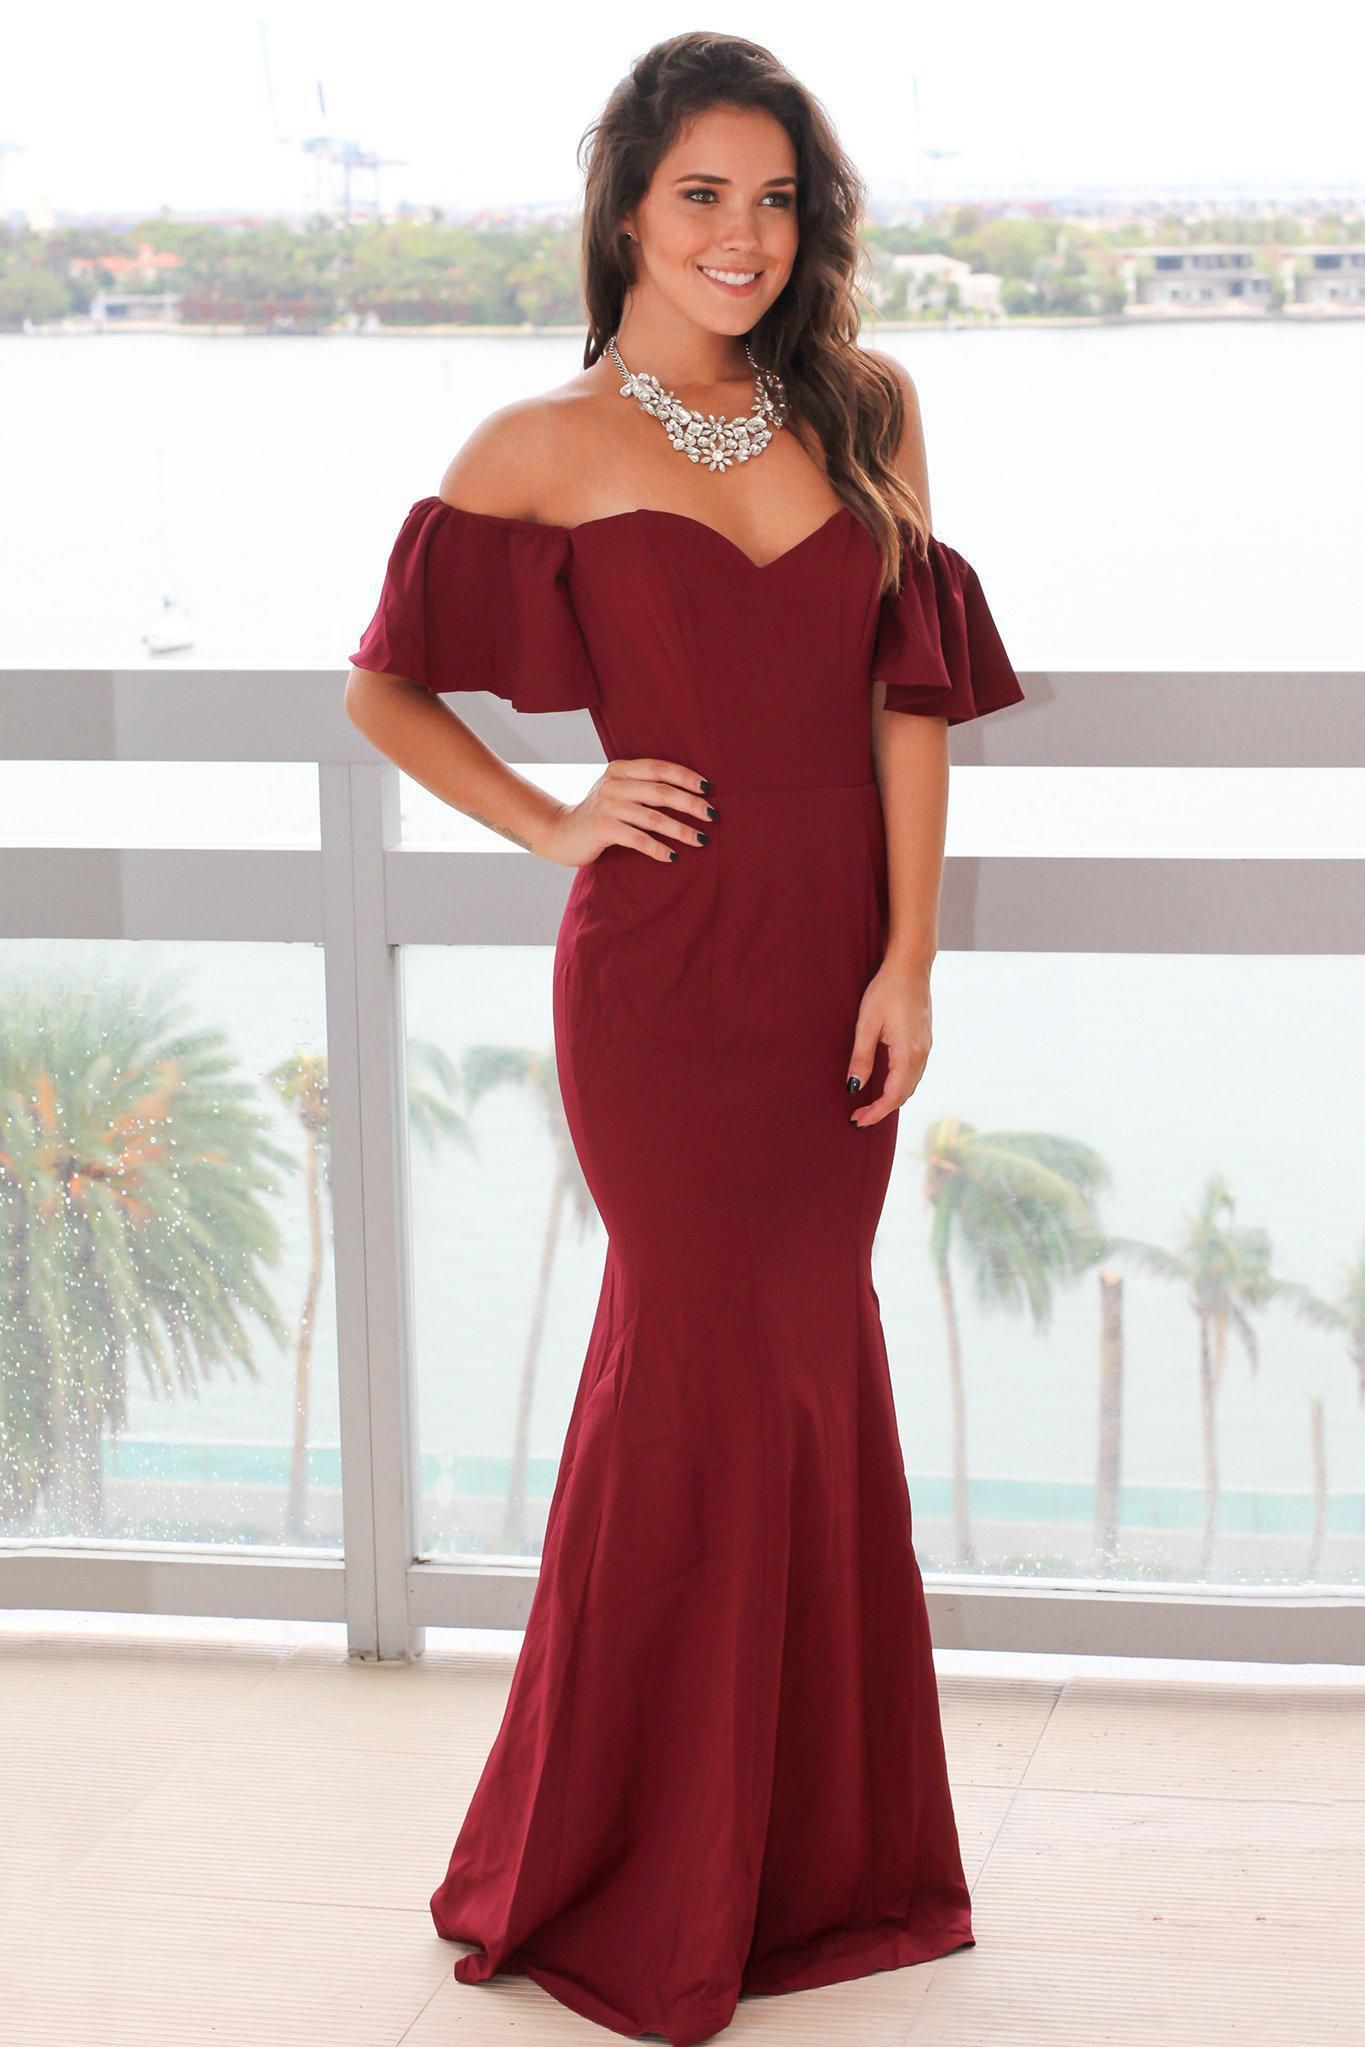 590c8279c40 Burgundy Off Shoulder Maxi Dress with Ruffles in 2019 | Products ...